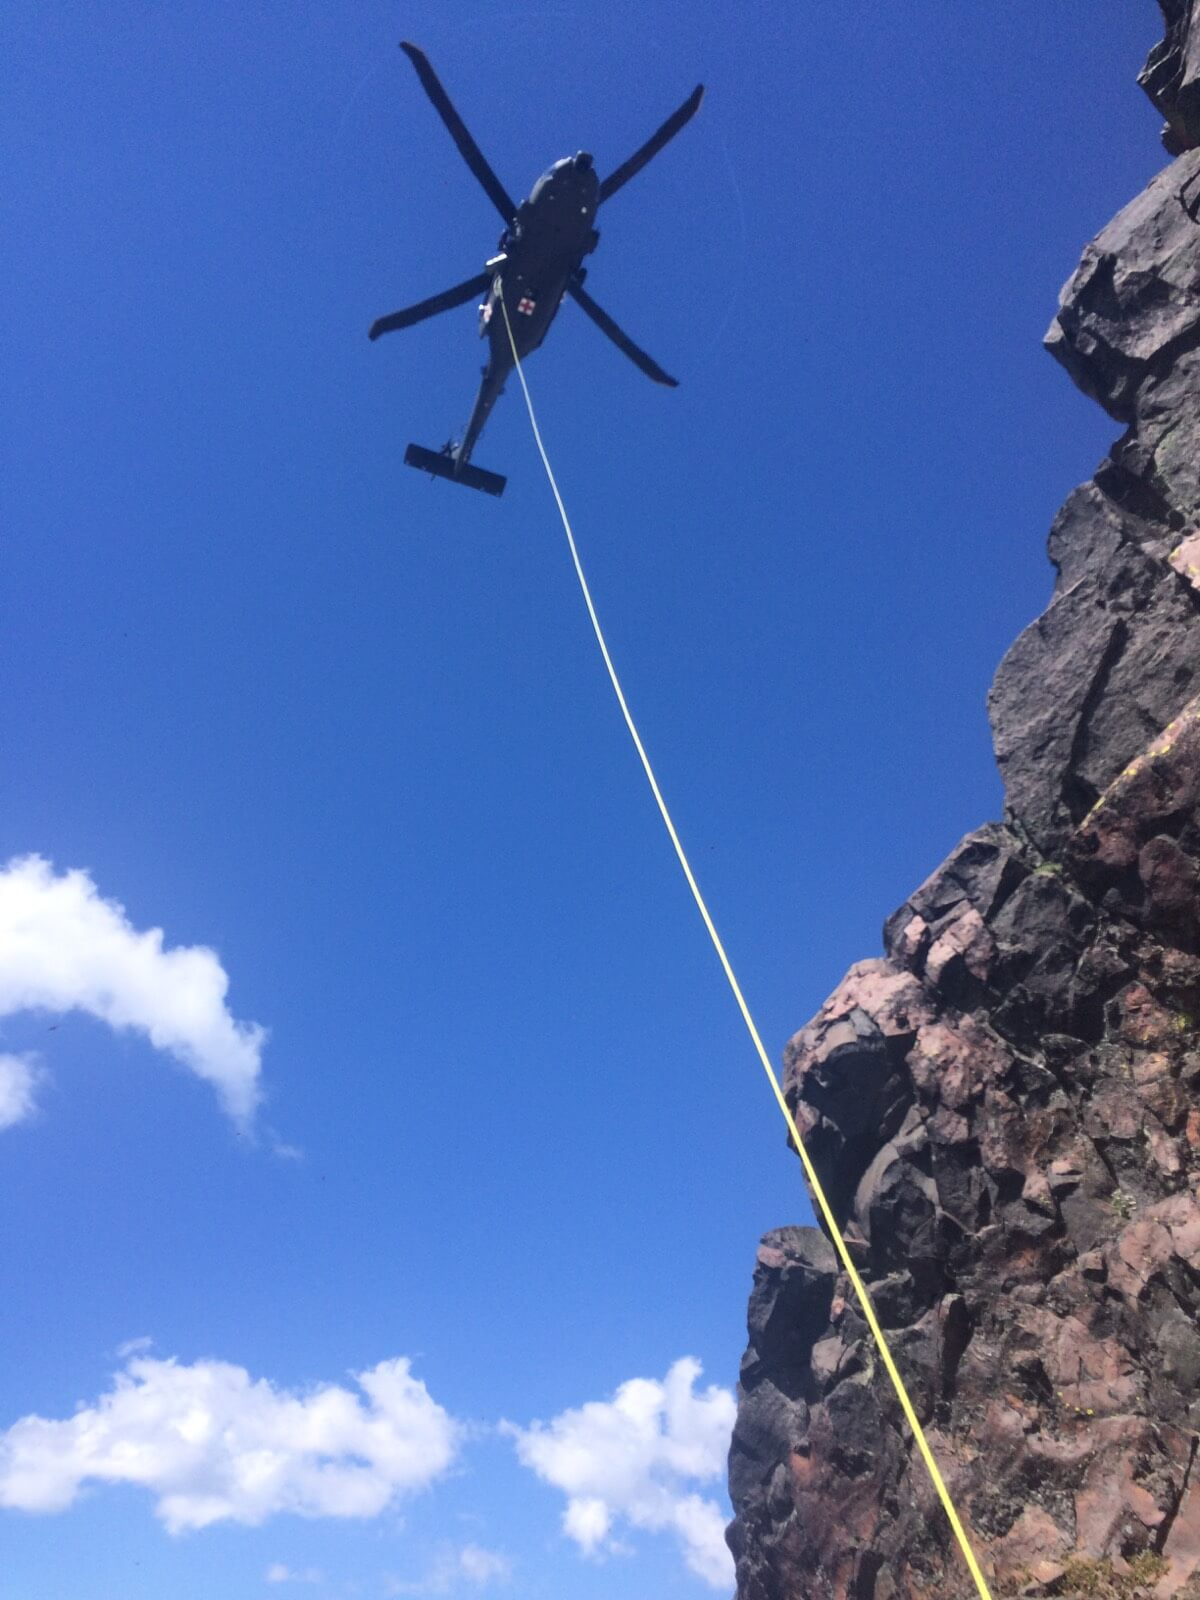 CLIMBER RESCUED FROM BROKEN TOP SUMMIT AFTER FALL